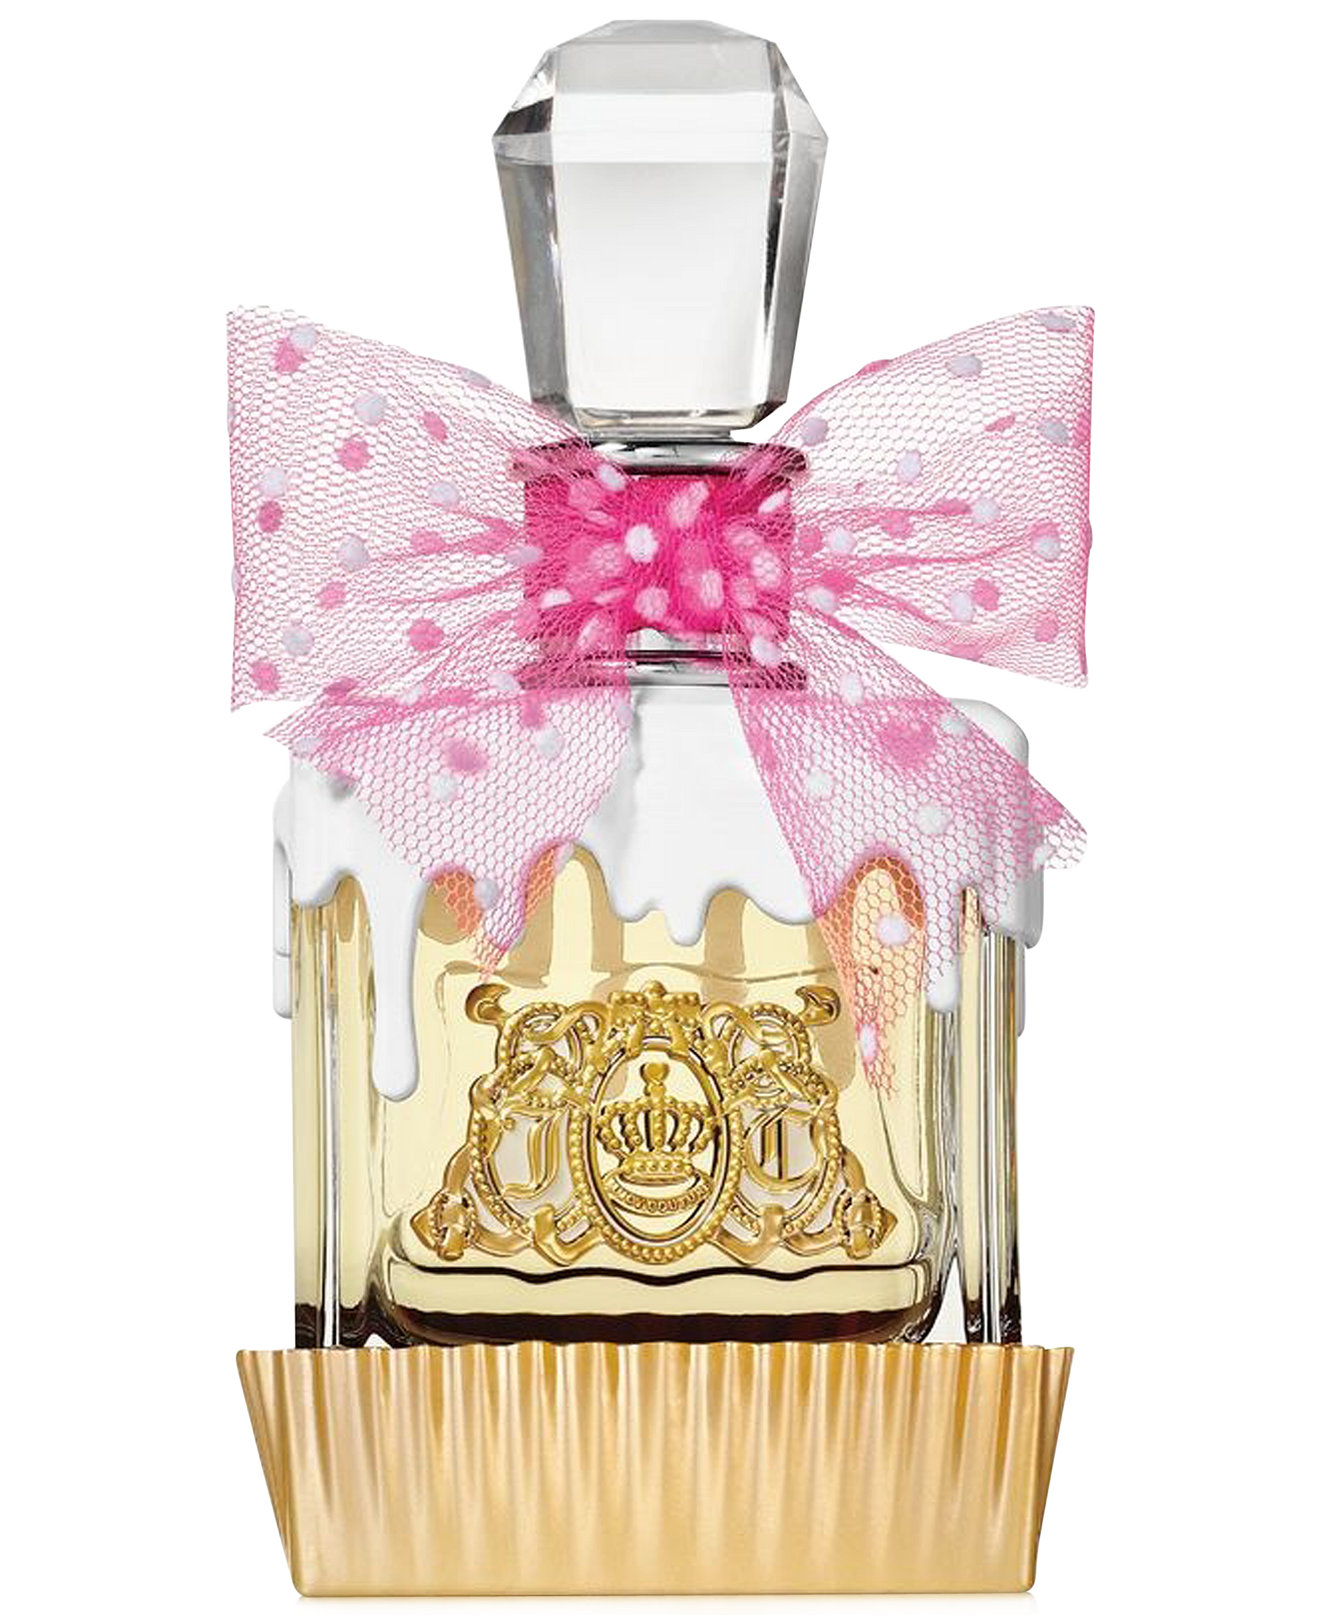 Juicy Couture Home Decor Jewelry U0026 Watches Find